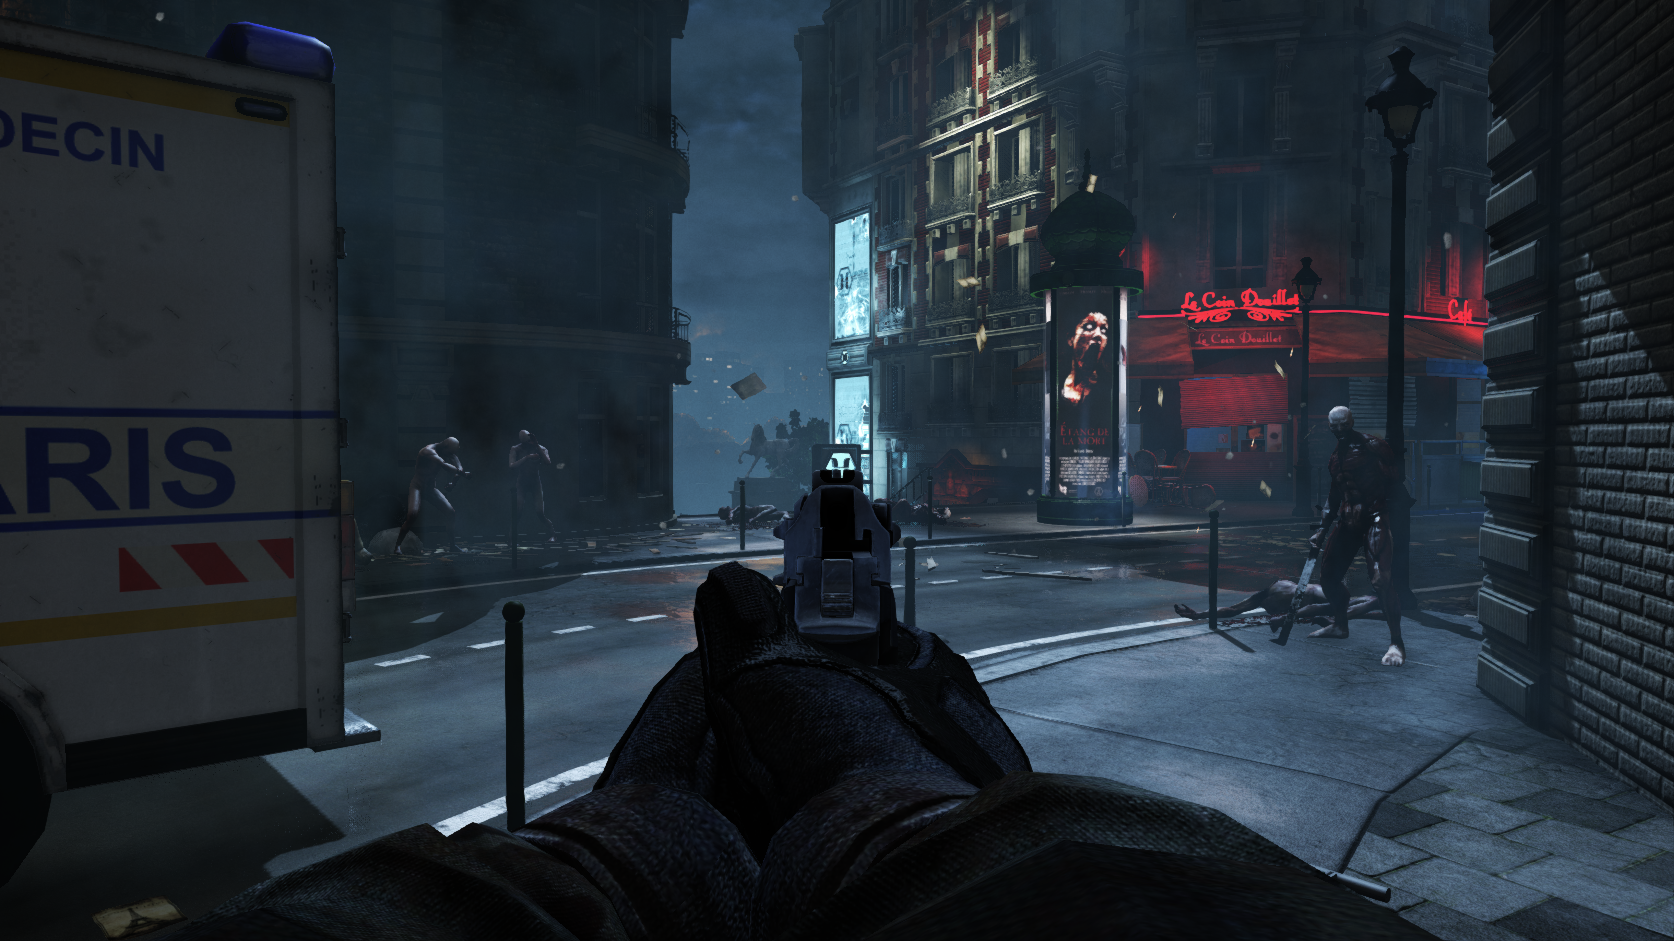 Killing floor 2 depth of field interactive for Floor 2 swordburst 2